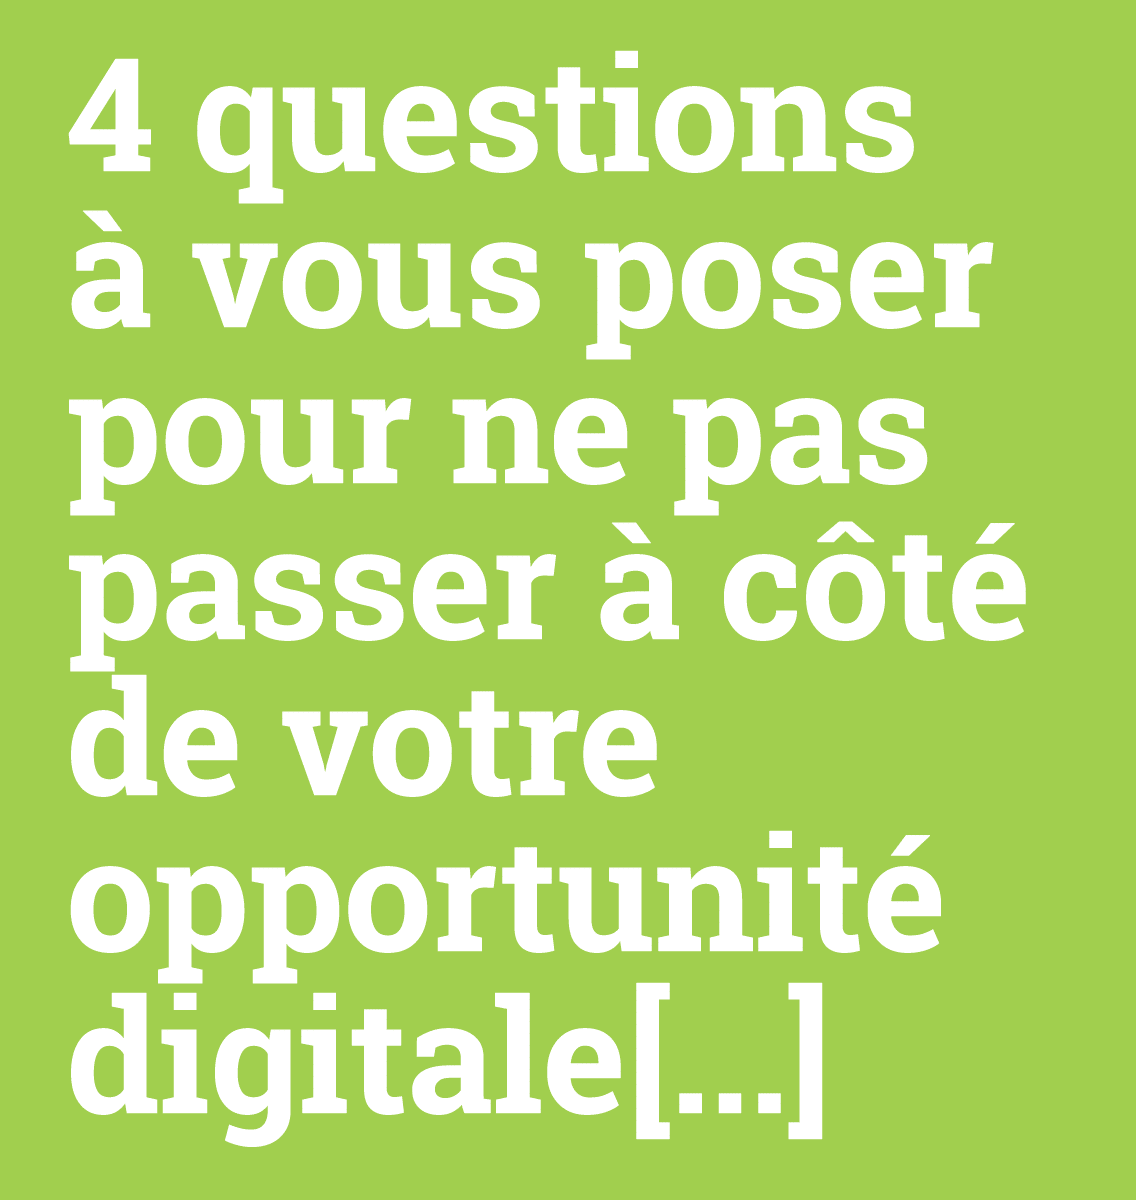 banner_texte_opportunite_digitale_1136px